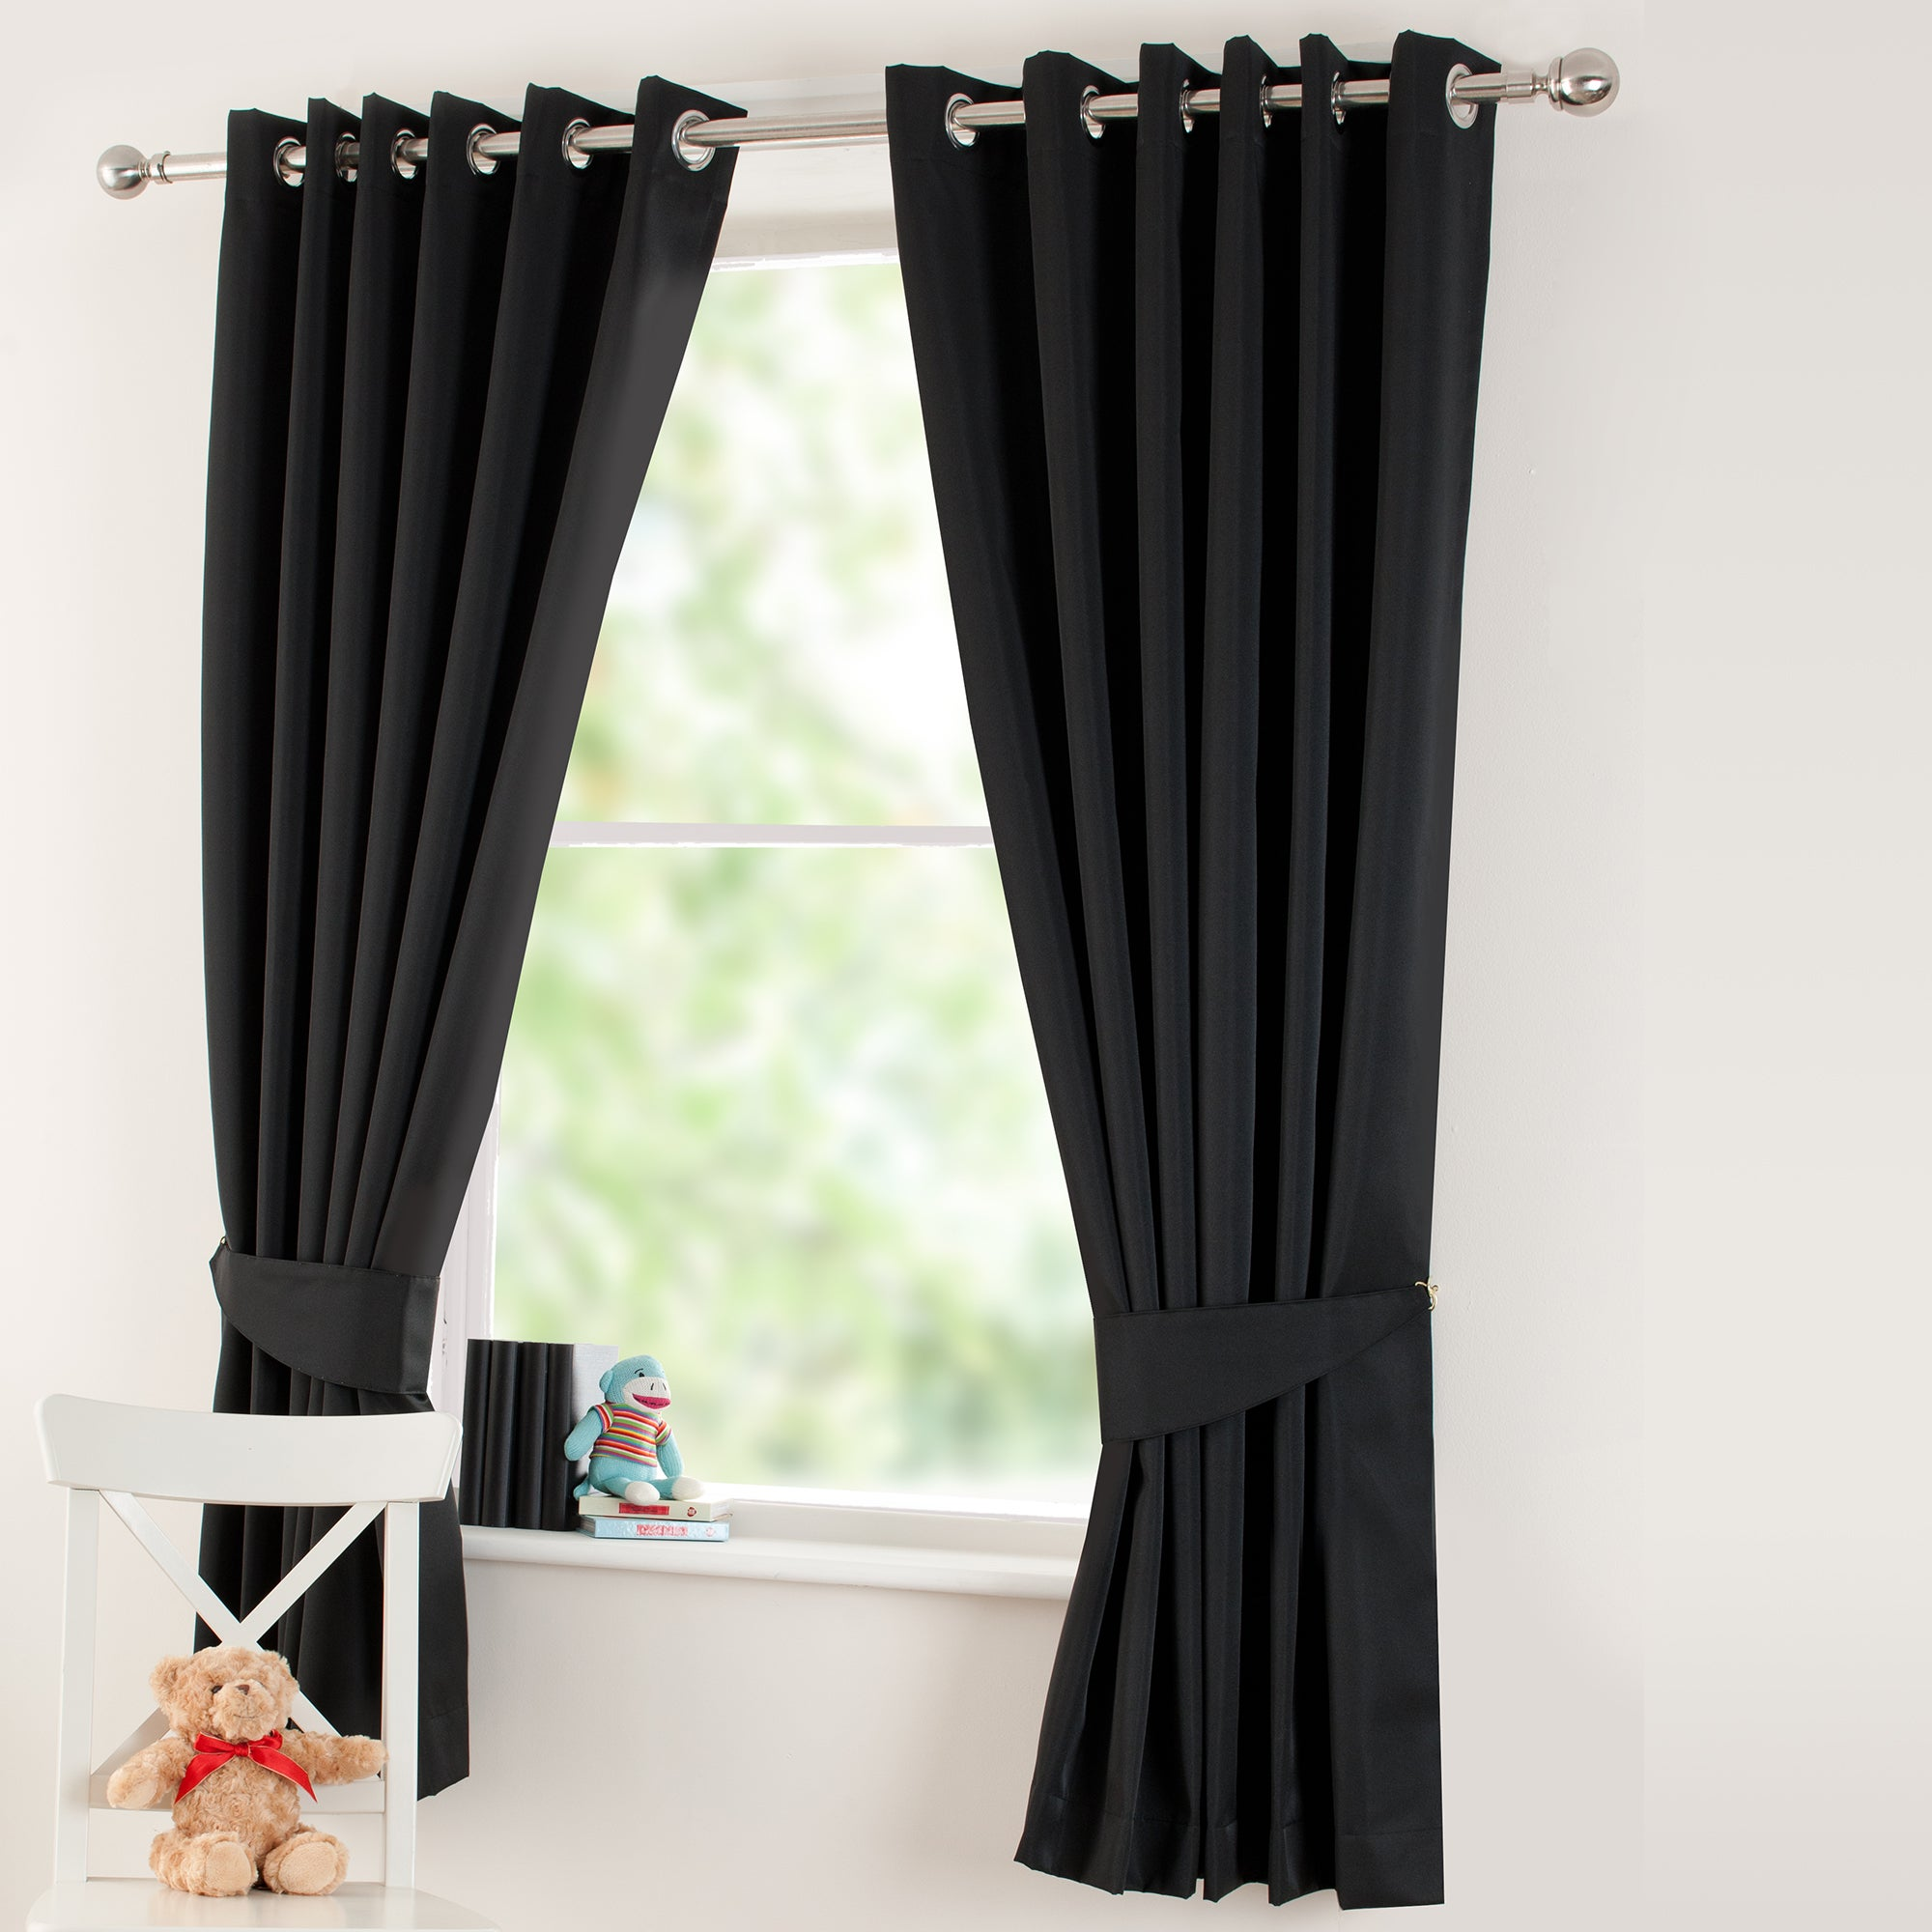 Kids Black Thermal Eyelet Curtains